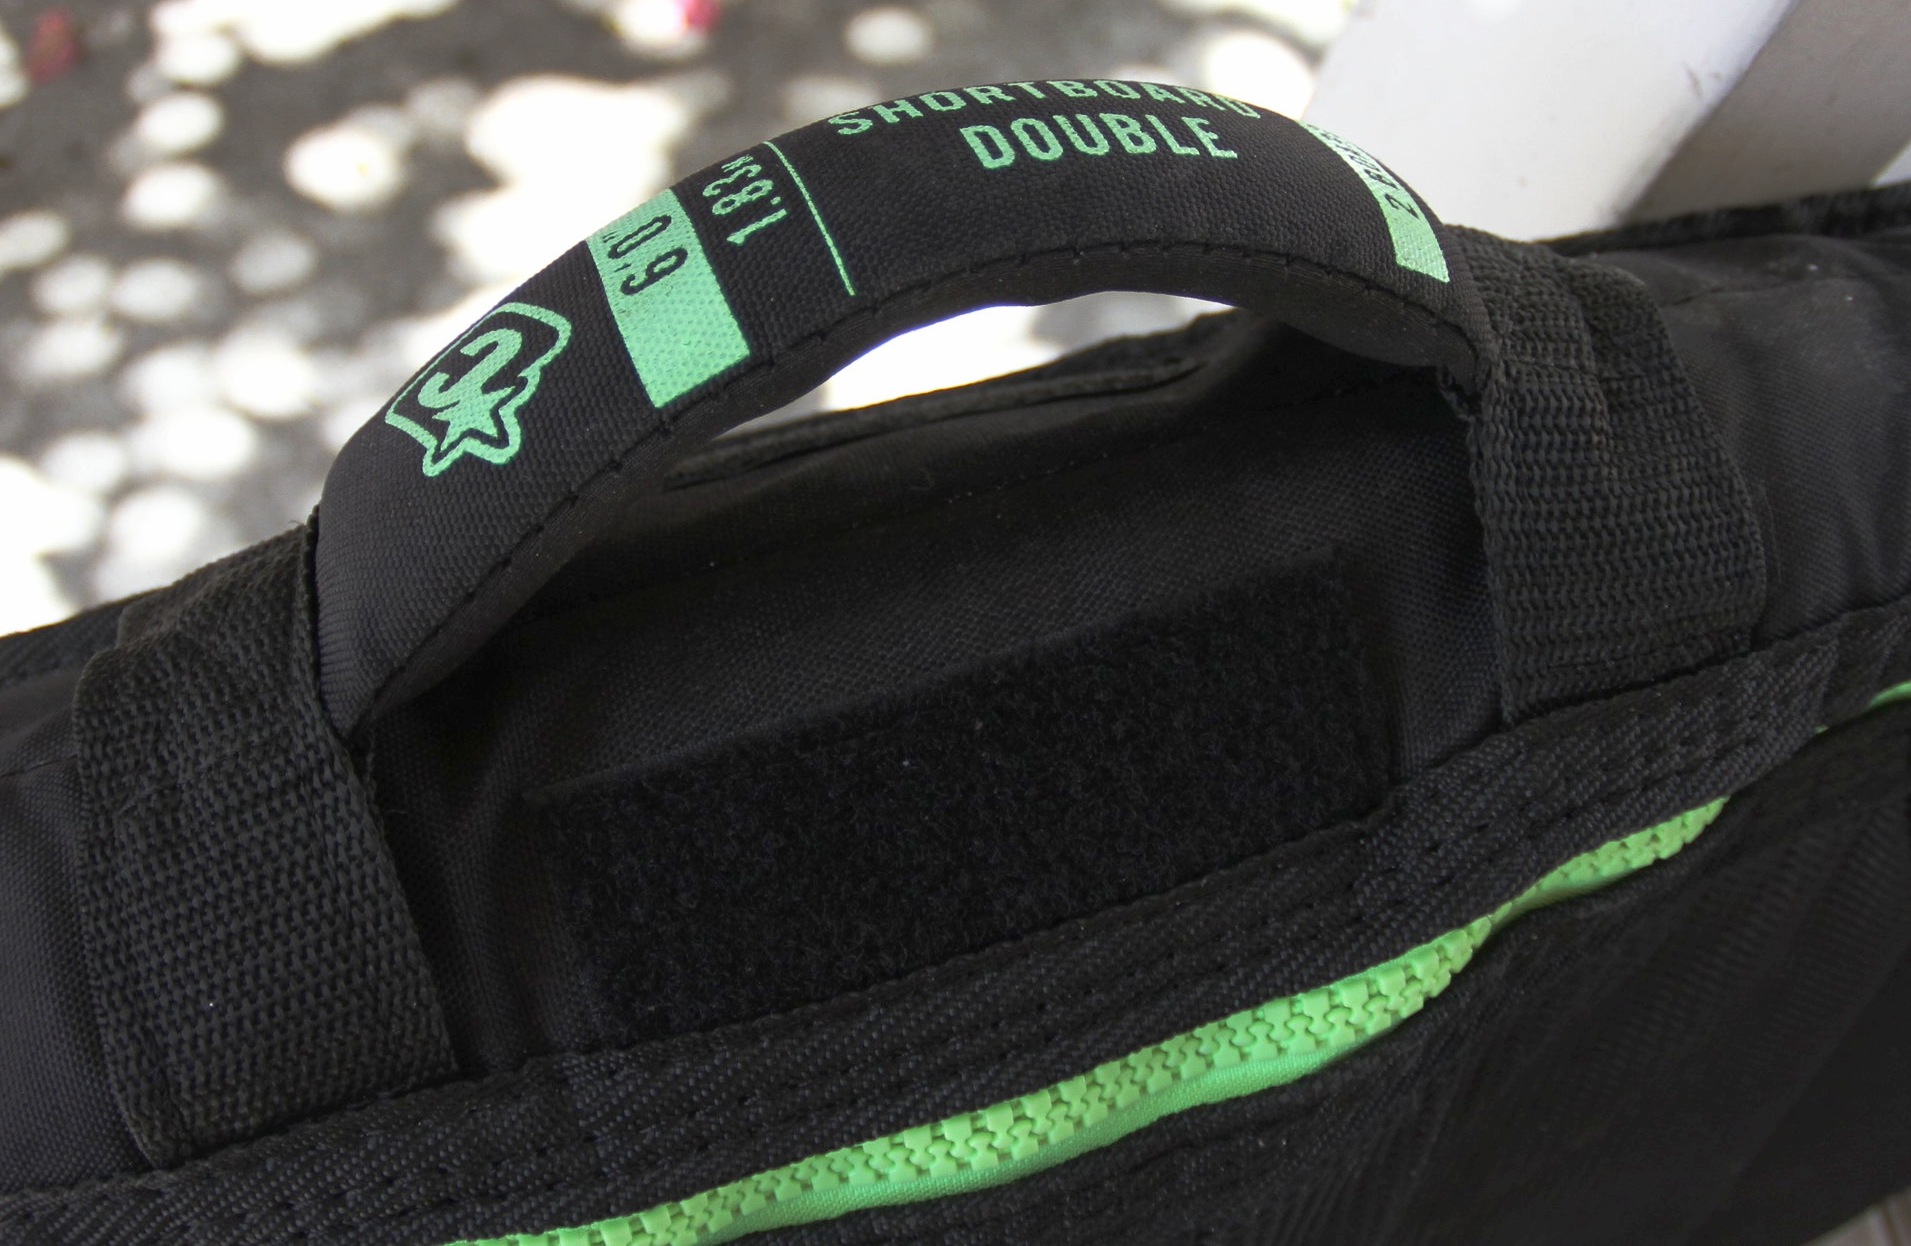 Sturdy handle with encased foam and web for comfort and durability. Box X stitches on both sides.